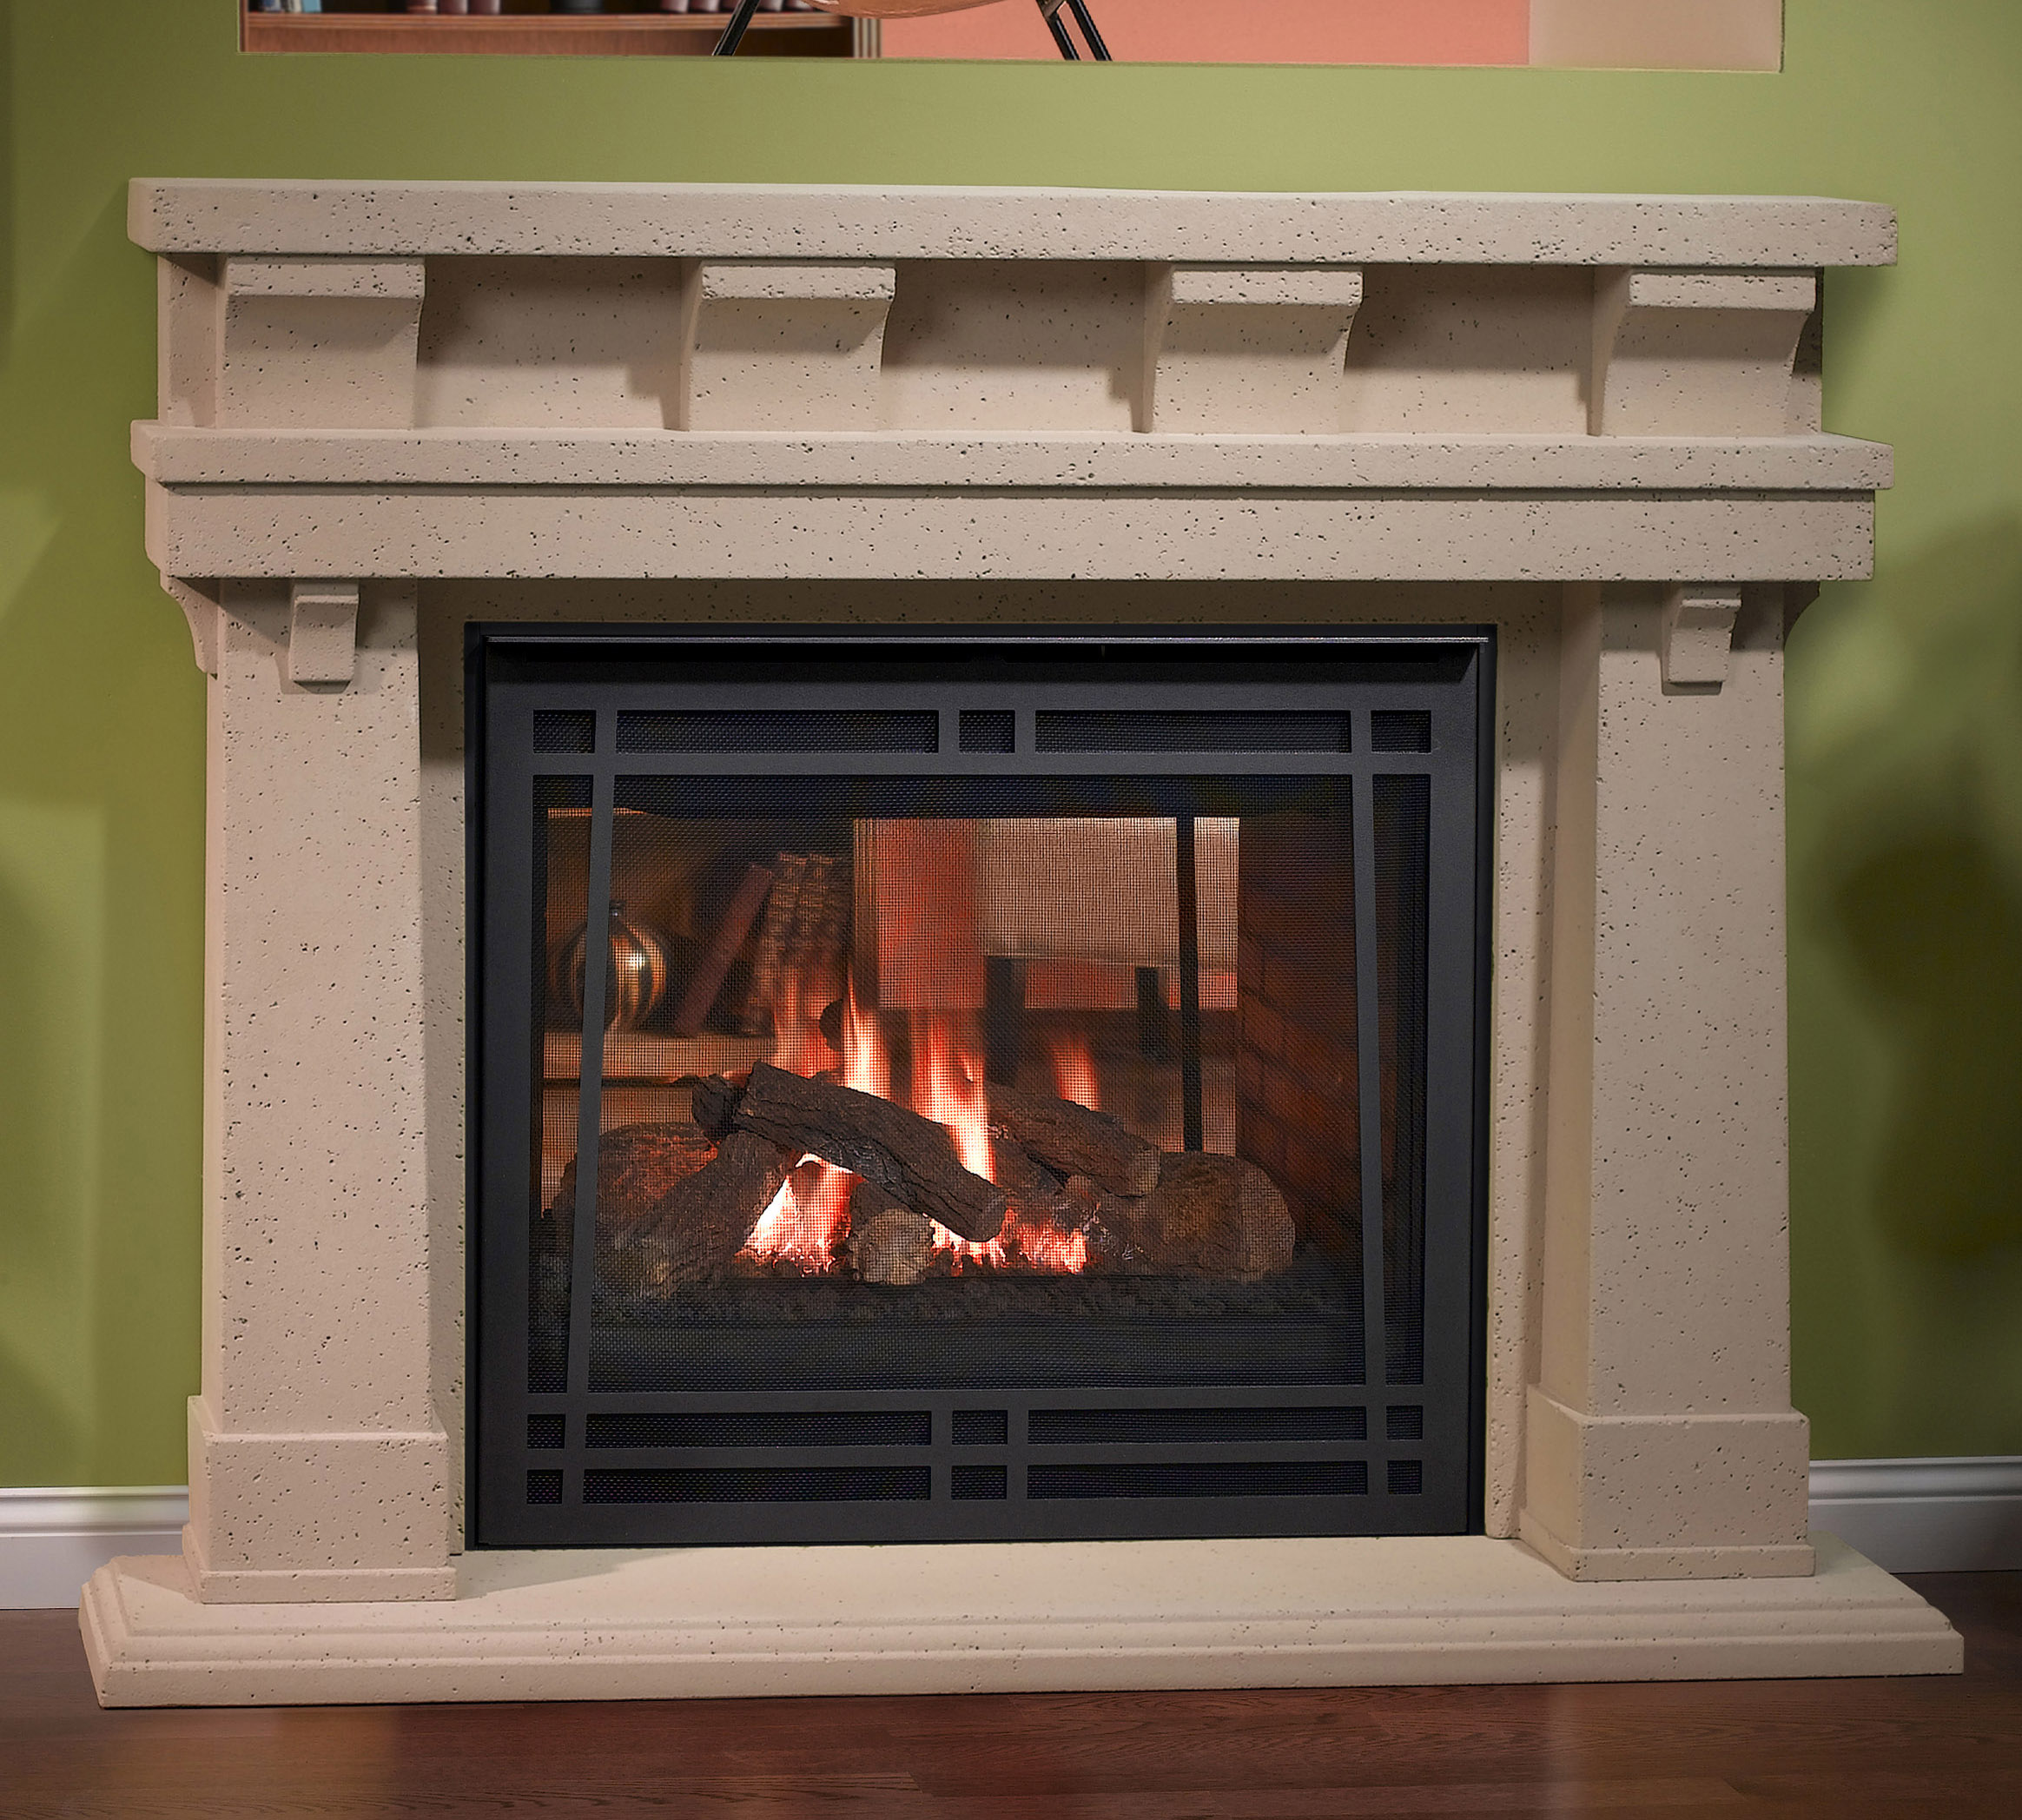 Gas fireplaces see through kastle fireplace for Craftsman gas fireplace